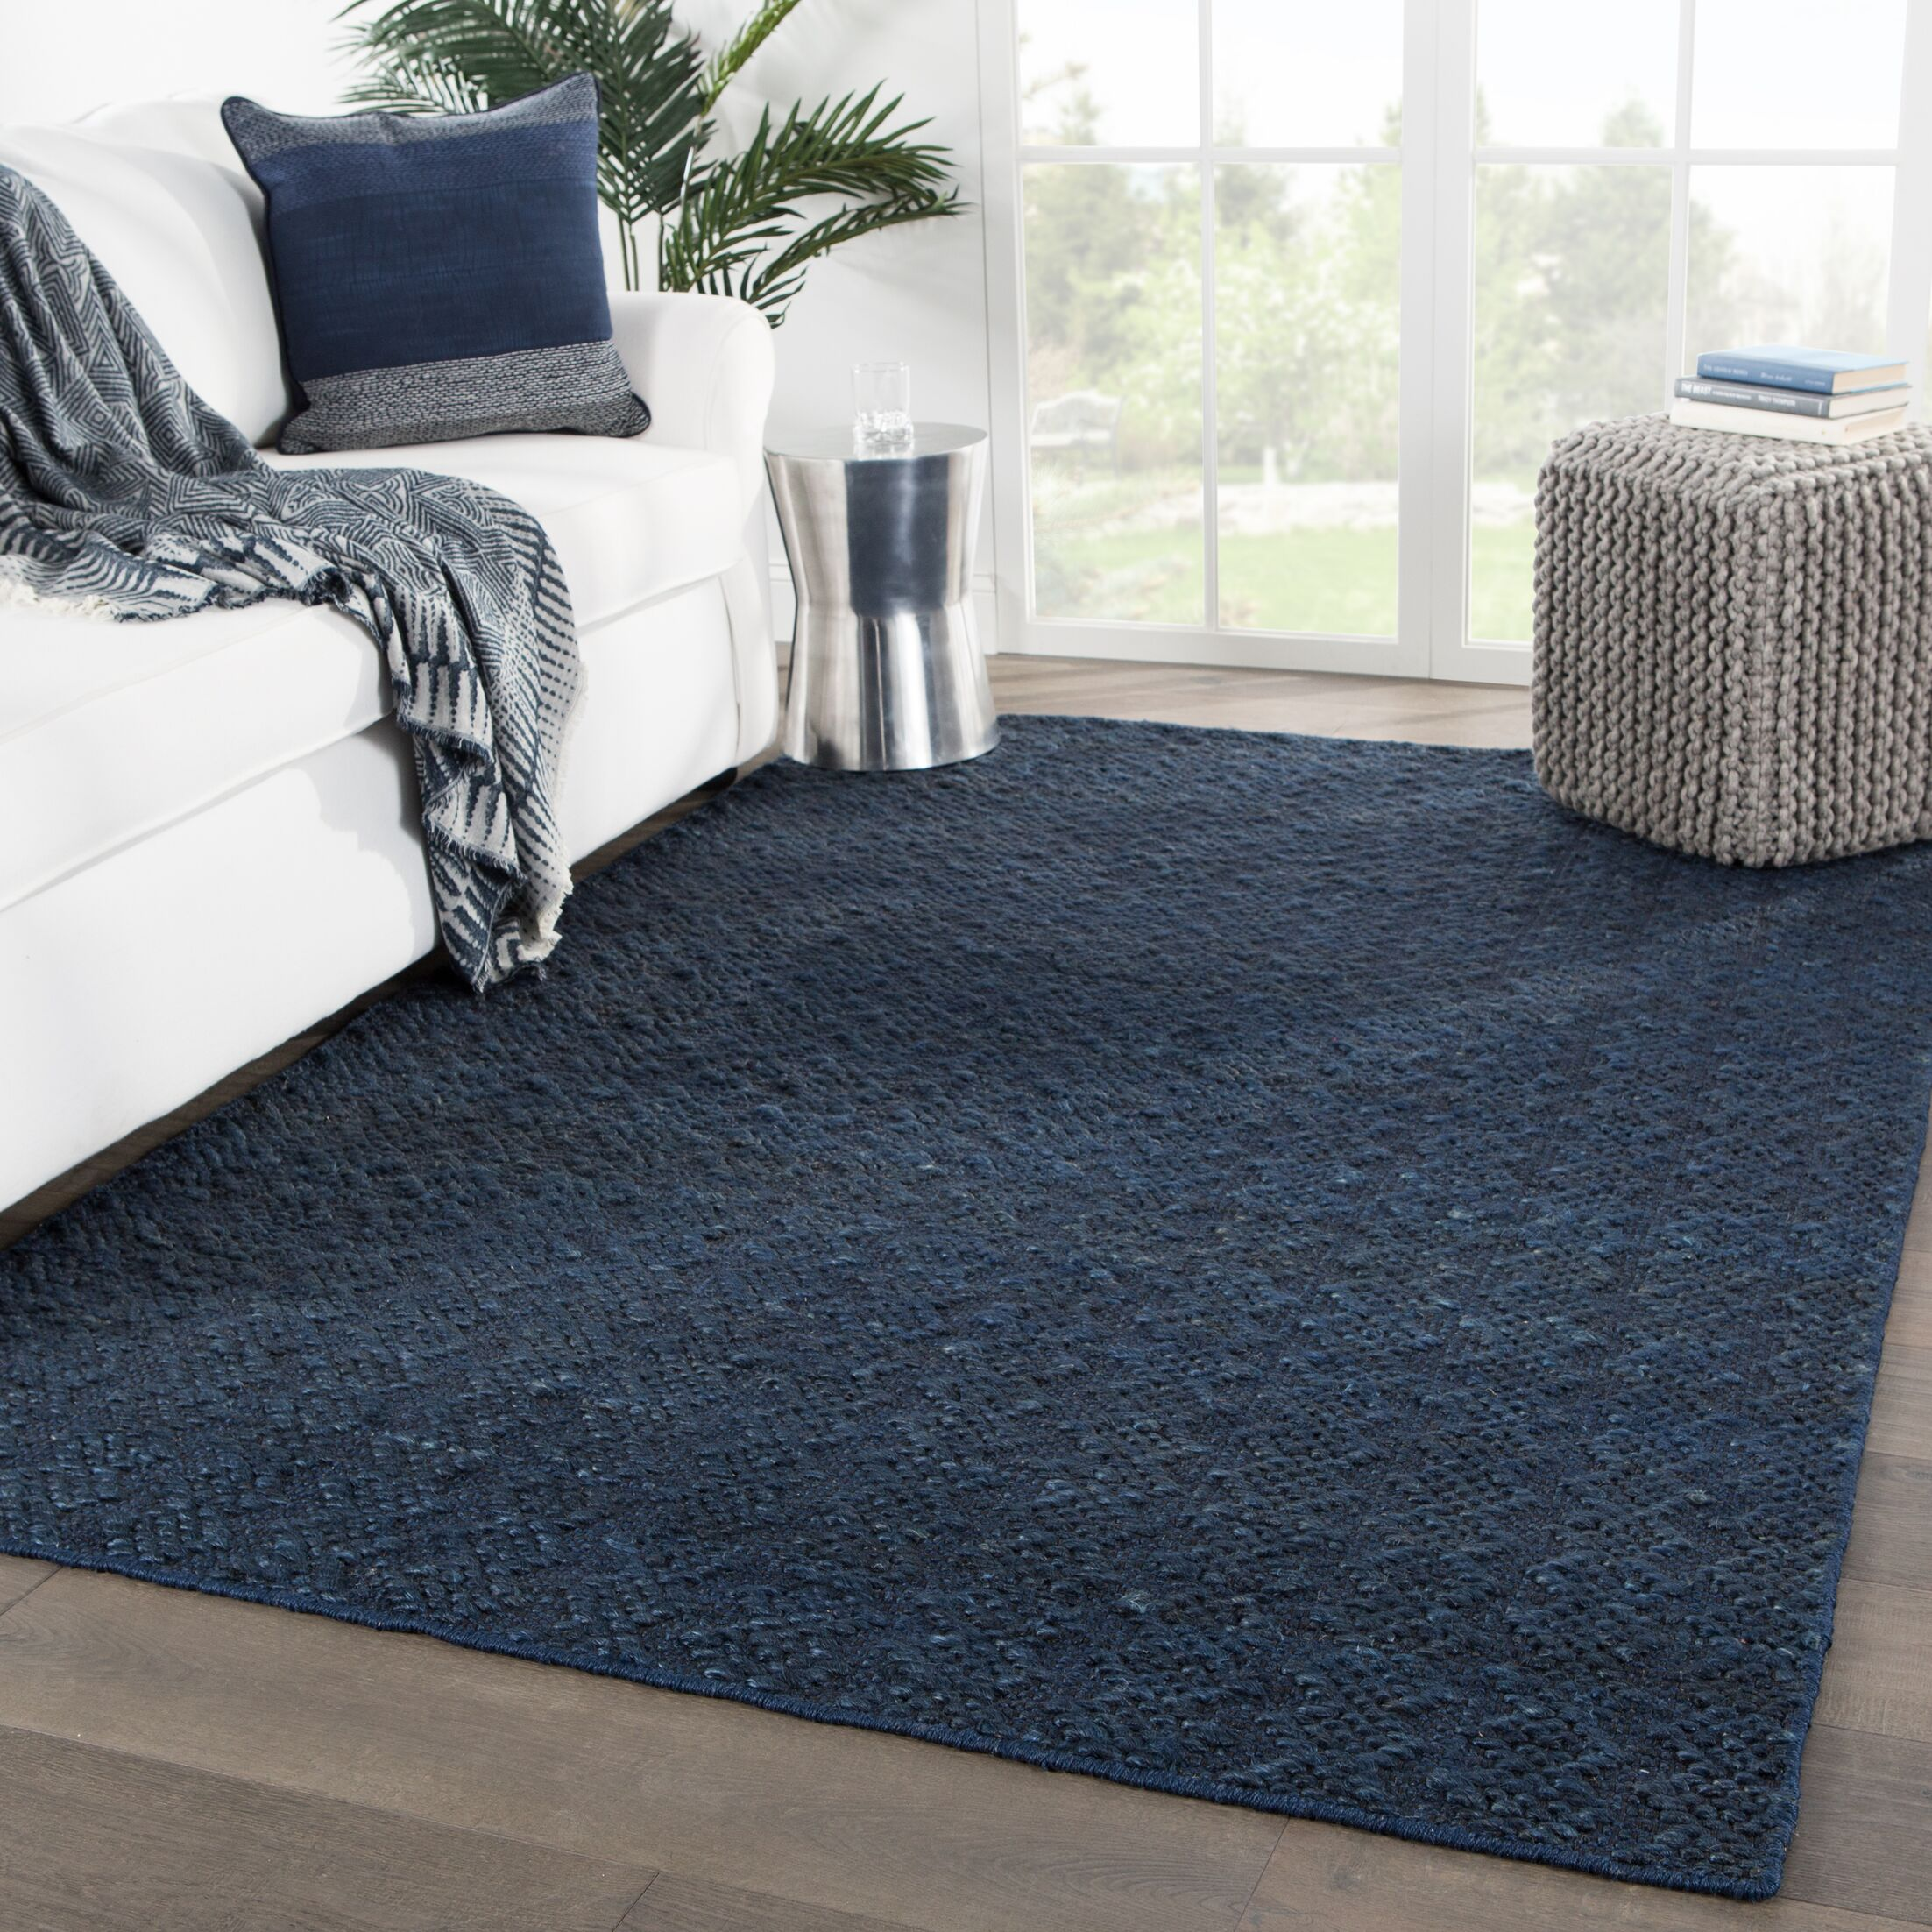 New Fairfield Natural Handwoven Flatweave Blue Area Rug Rug Size: Rectangle 7'10